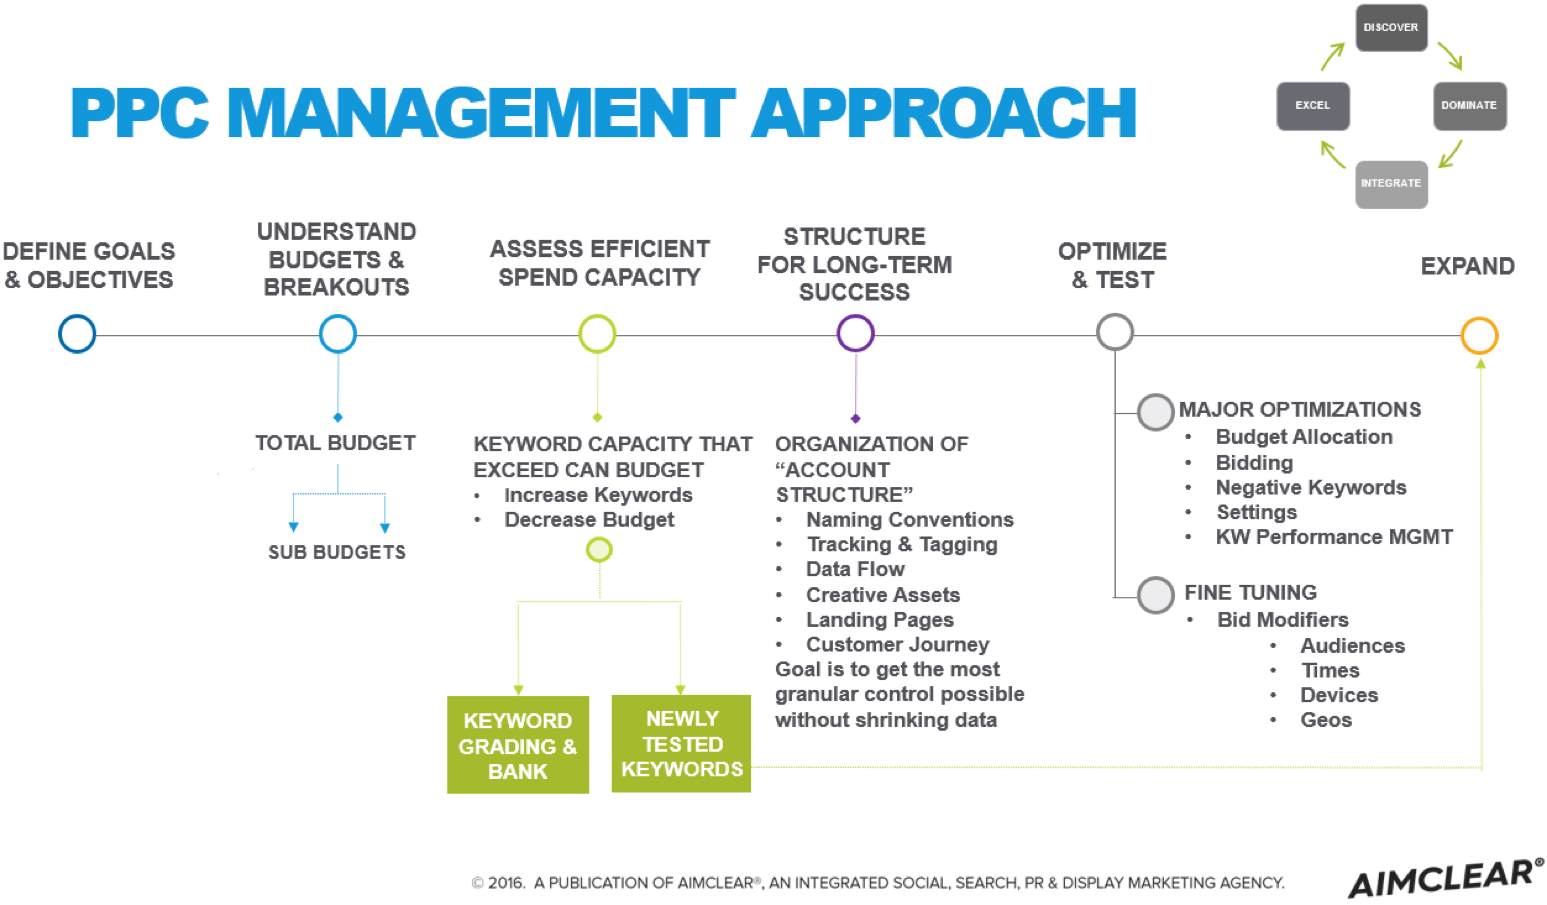 Aimclear PPC Management Approach